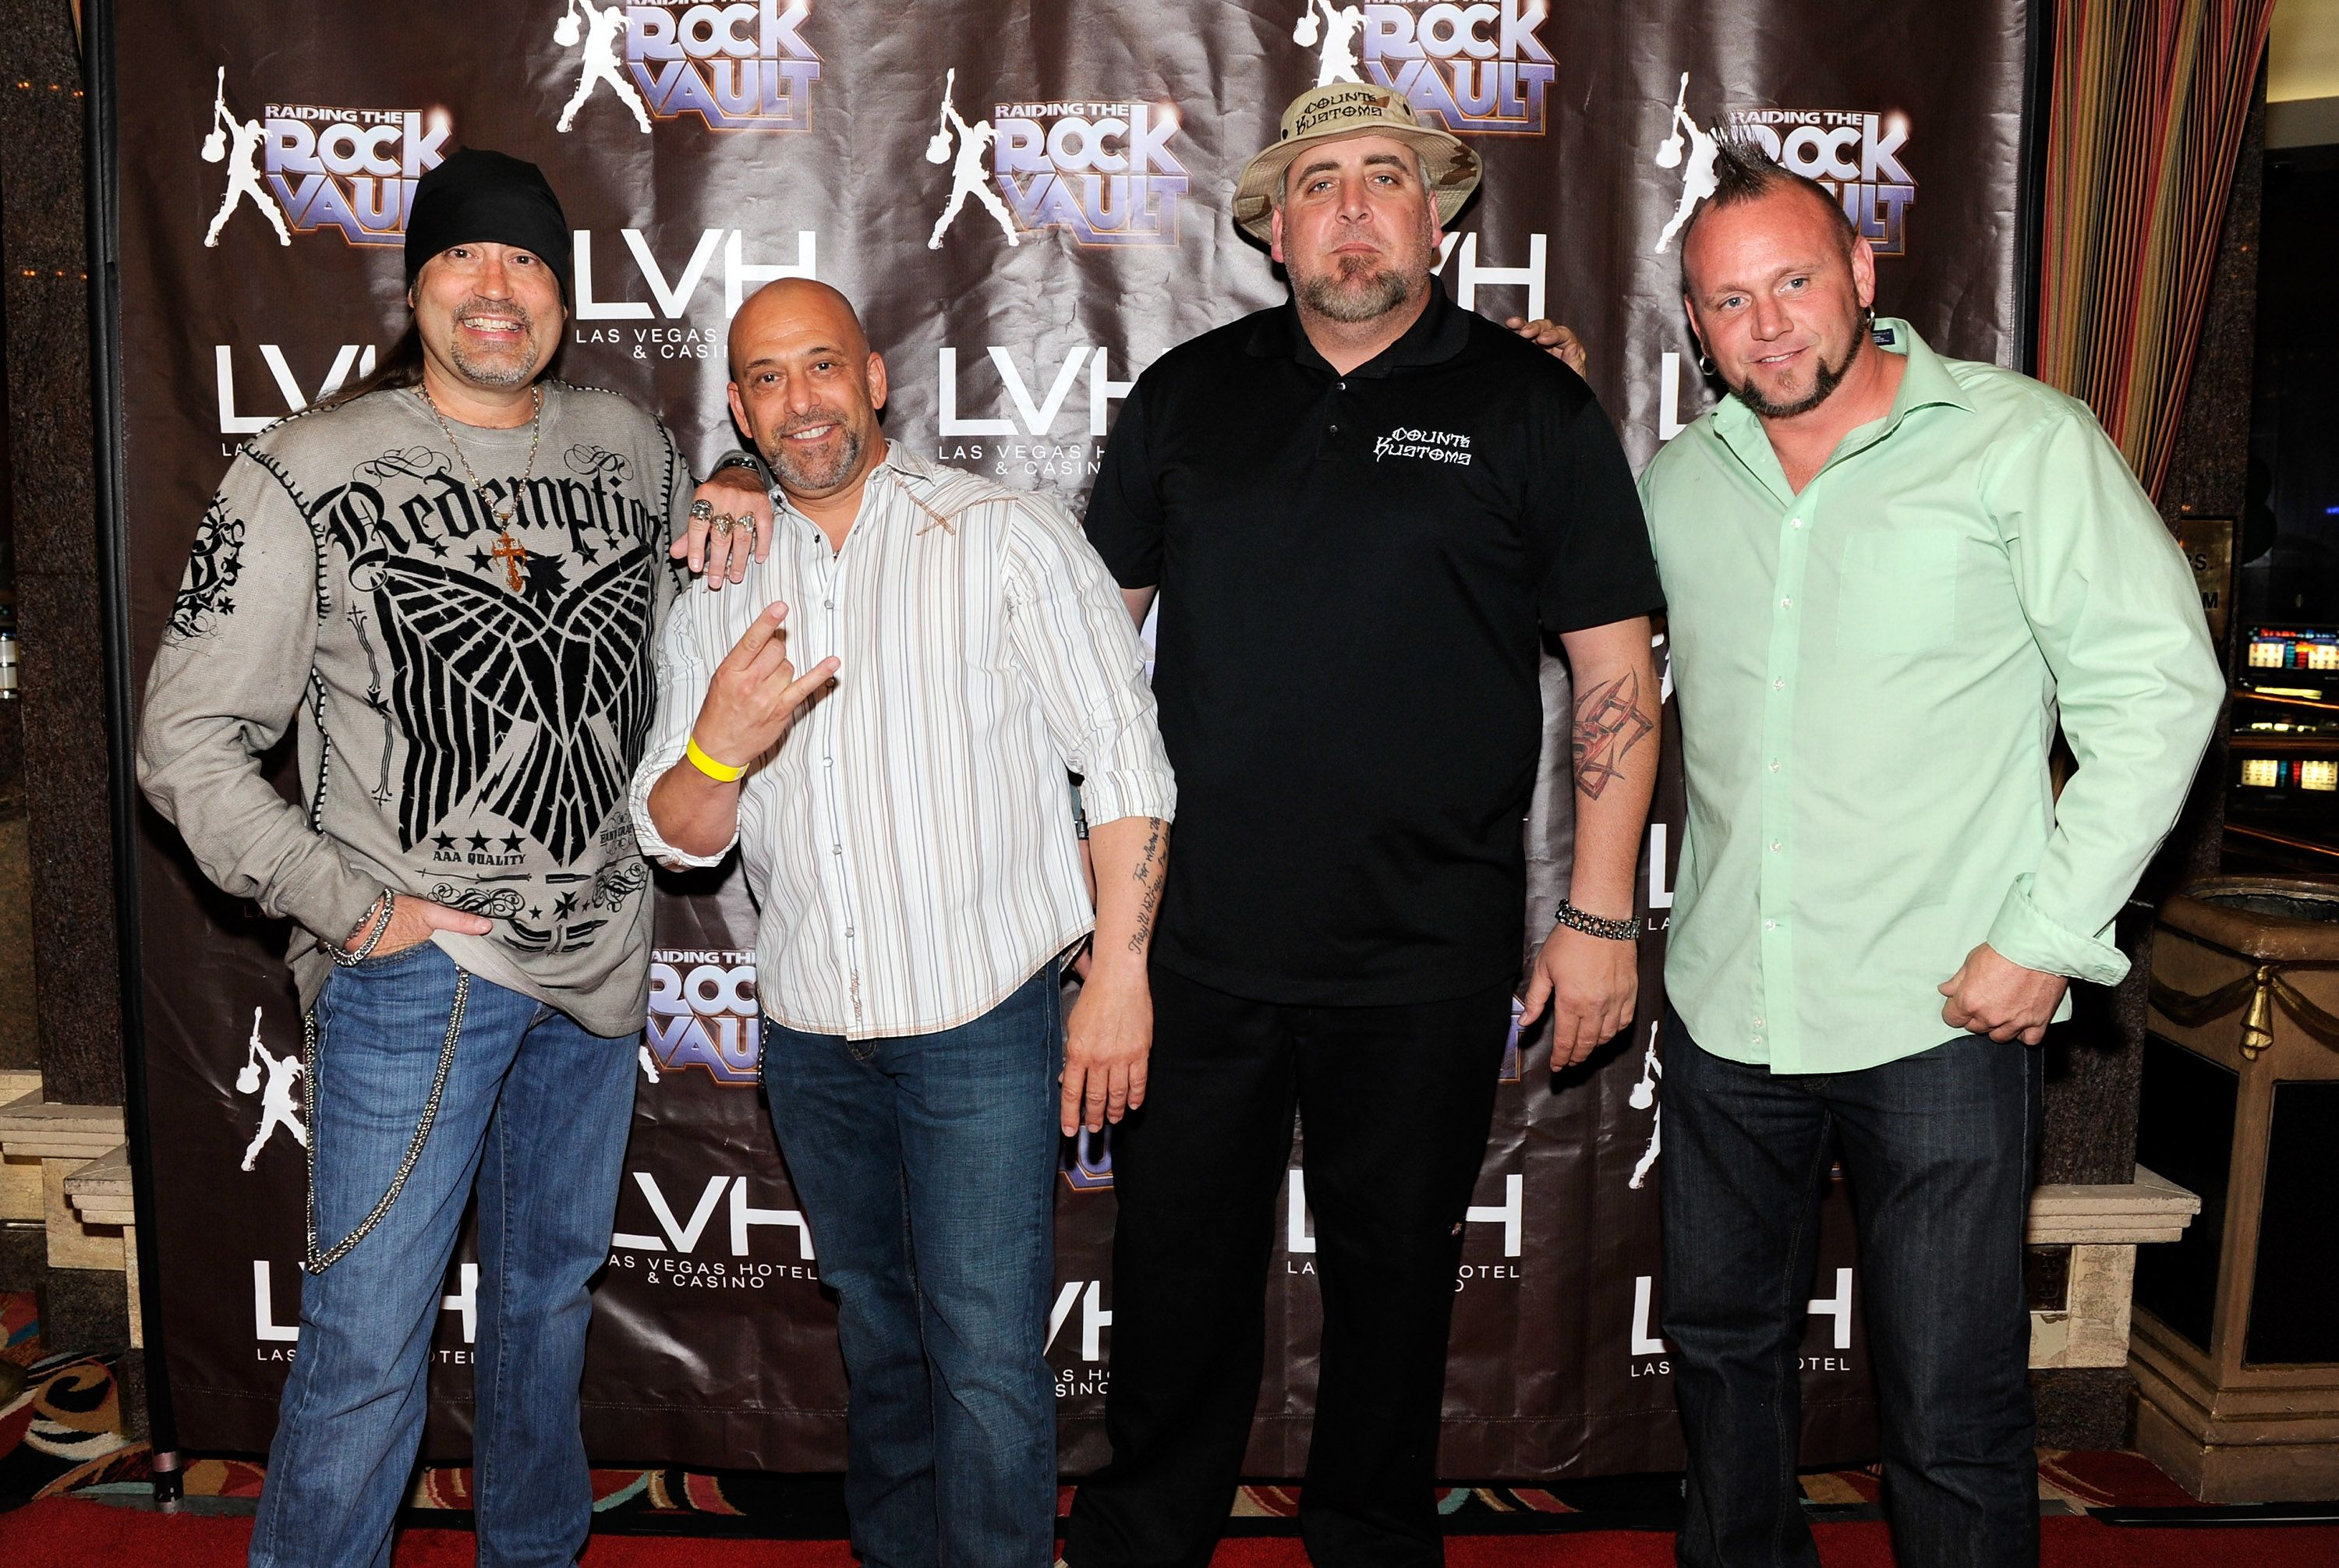 Photos Raiding the Rock Vault Debuts at LVH in RockStar